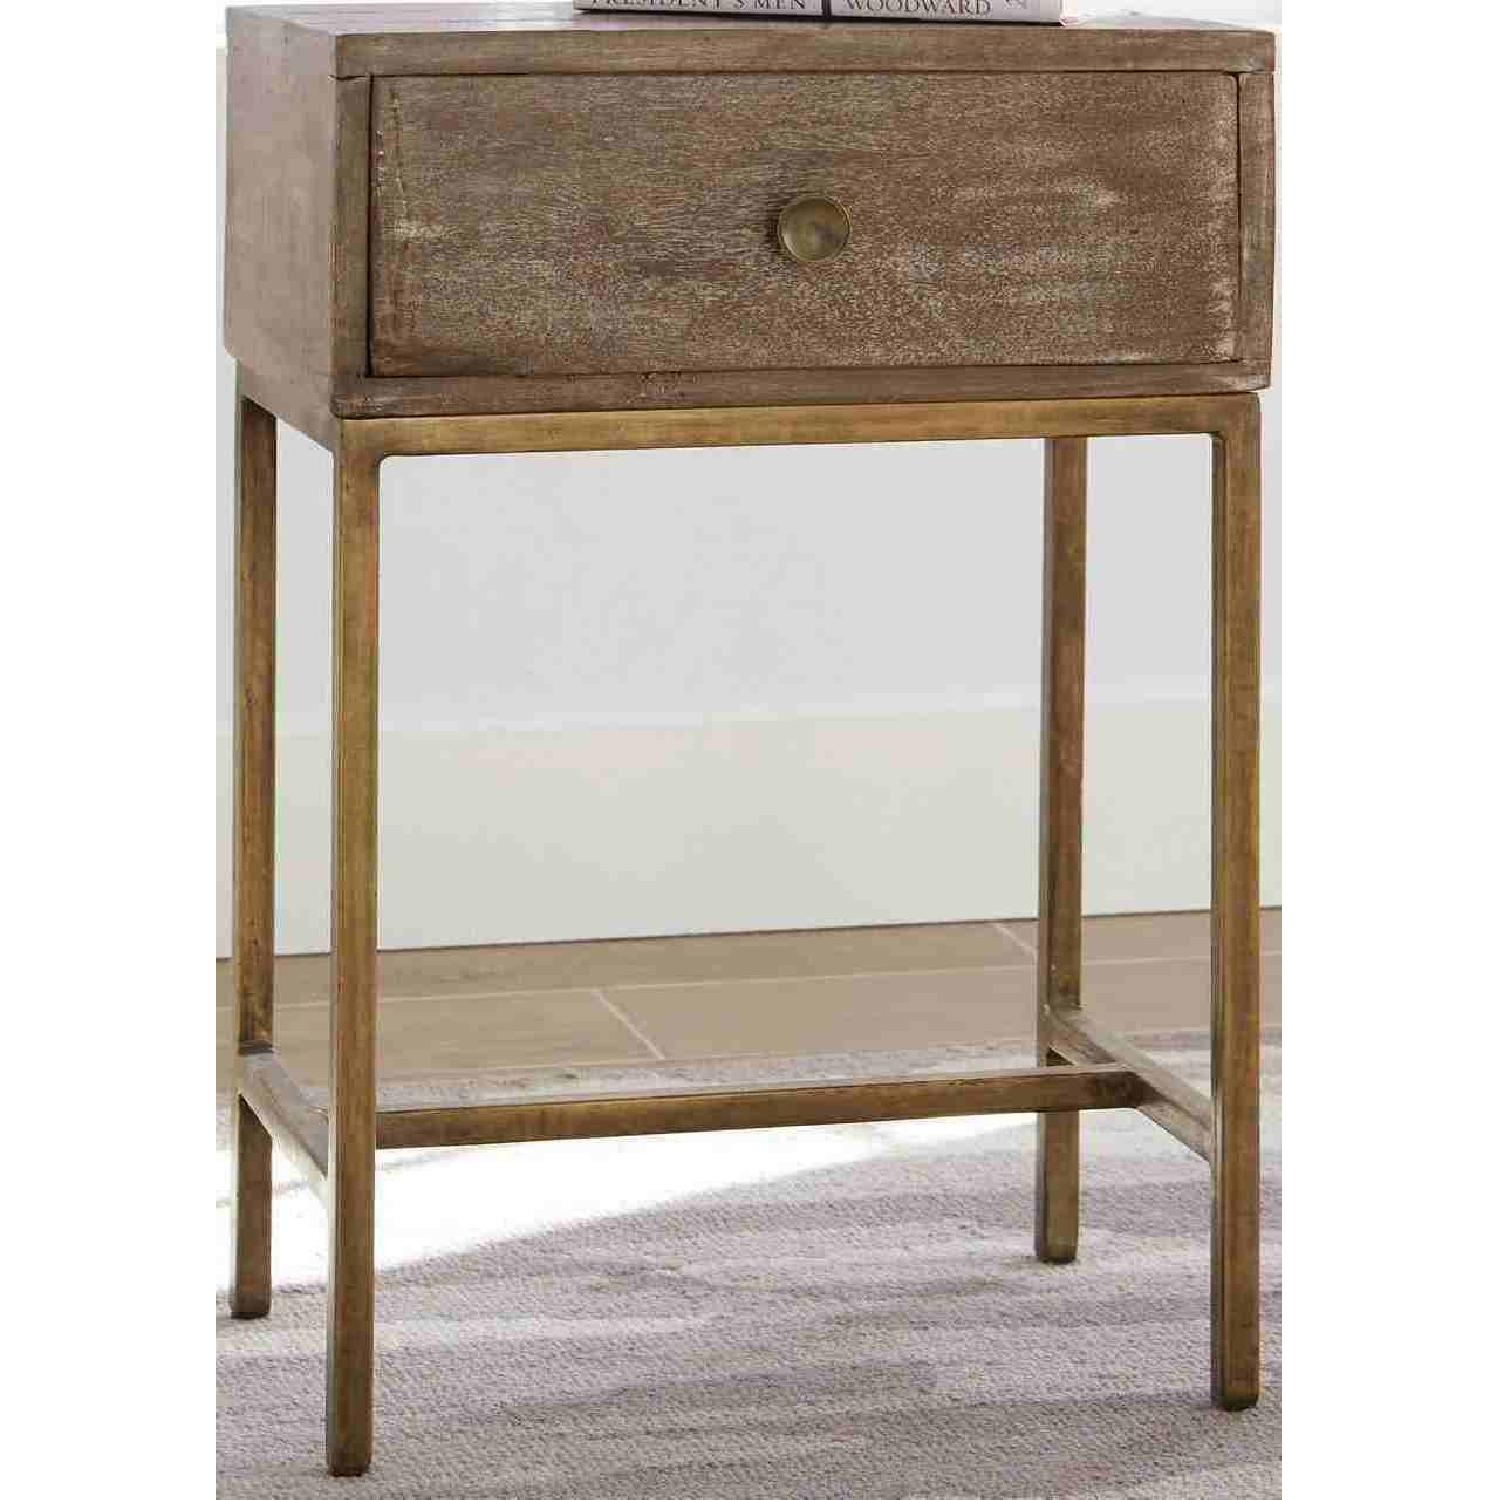 Accent Table w/ Drawer in Weathered Natural & Antique Gold - image-2